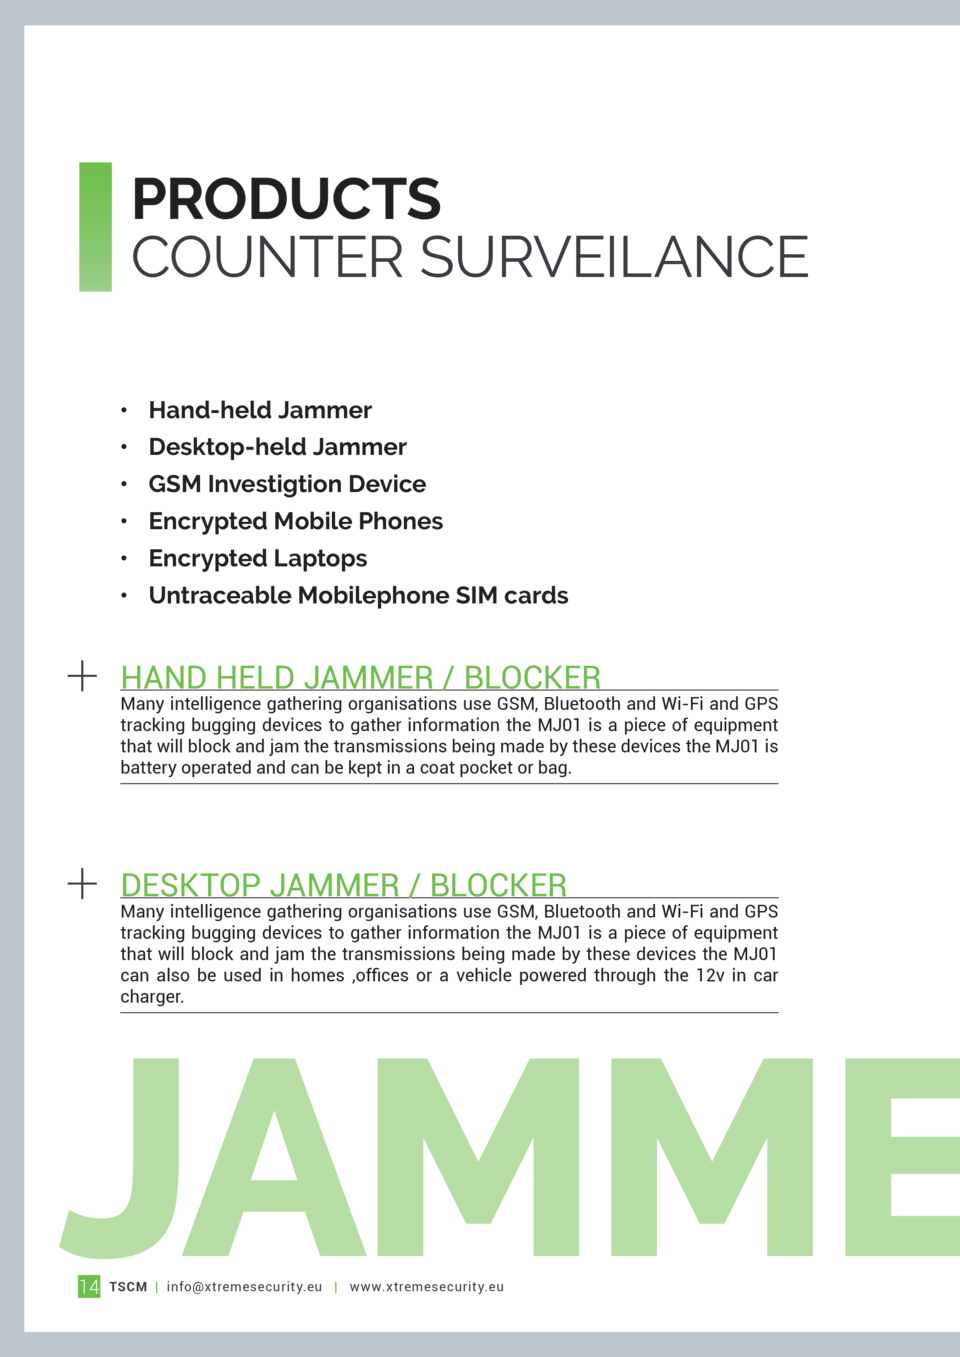 PRODUCTS COUNTER SURVEILANCE      Hand-held Jammer      Desktop-held Jammer      GSM Investigtion Device      Encrypted Mo...